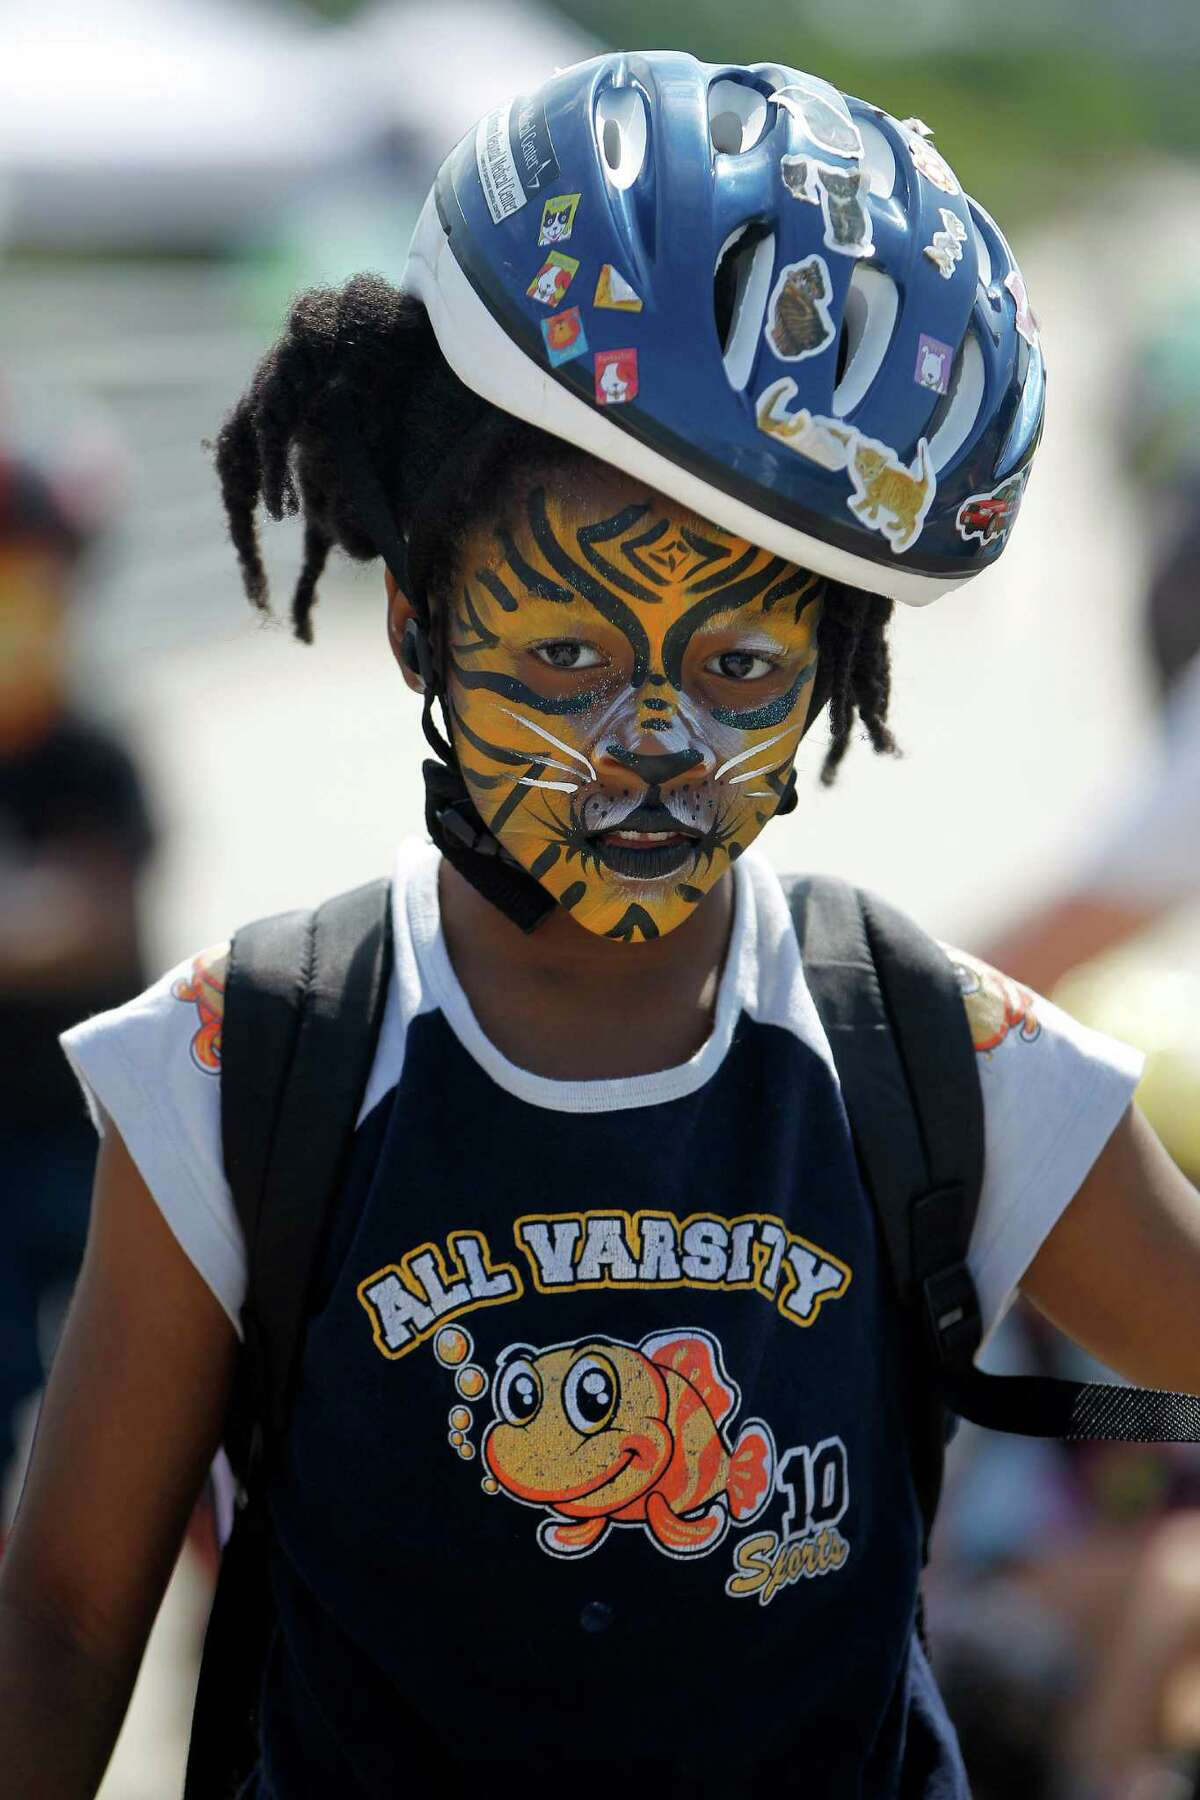 Yuriko White, 9, with her face painted, roller skates during Bridge Bash ceremonies at the new White Oak Bayou greenway bridge and trails, West of Heights Trail on Saturday, May 2, 2015, in Houston. The Houston Parks Board, Memorial Heights Redevelopment Authority and Tax Increment Reinvestment Zone (TIRZ) 5, and the City of Houston will host a âÄúBridge BashâÄù to celebrate the completion of a new segment of White Oak Bayou Greenway.The new bridge replaces the former MKT Railroad Bridge, also known as the âÄúBBQ BridgeâÄù between Shepherd Drive and Moy Street.